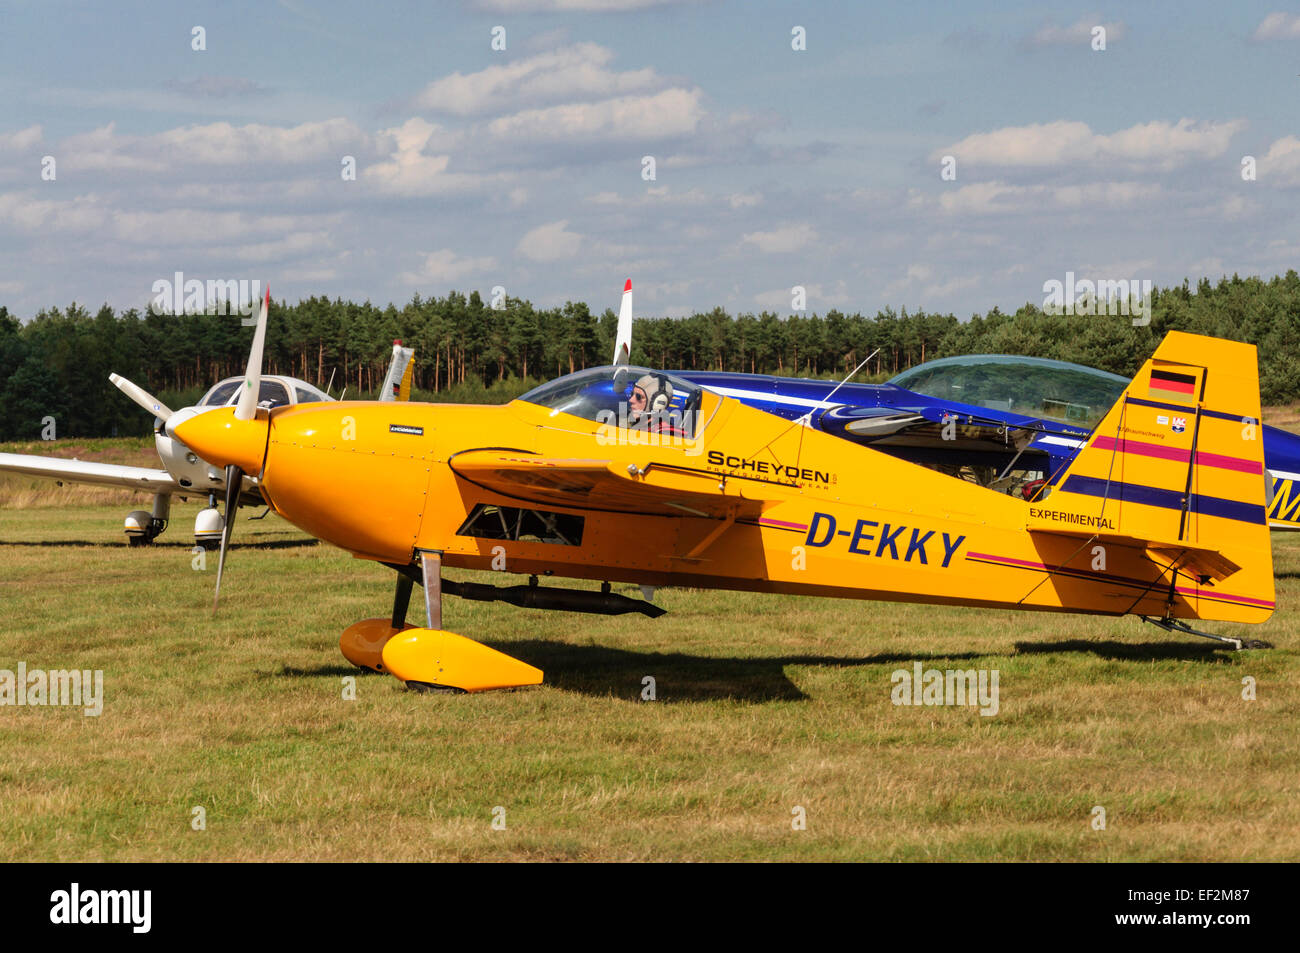 Aerobatic airplane taxiing to runway for a flight demonstration - Arloh Flugplatzfest 2009 Germany - Stock Image